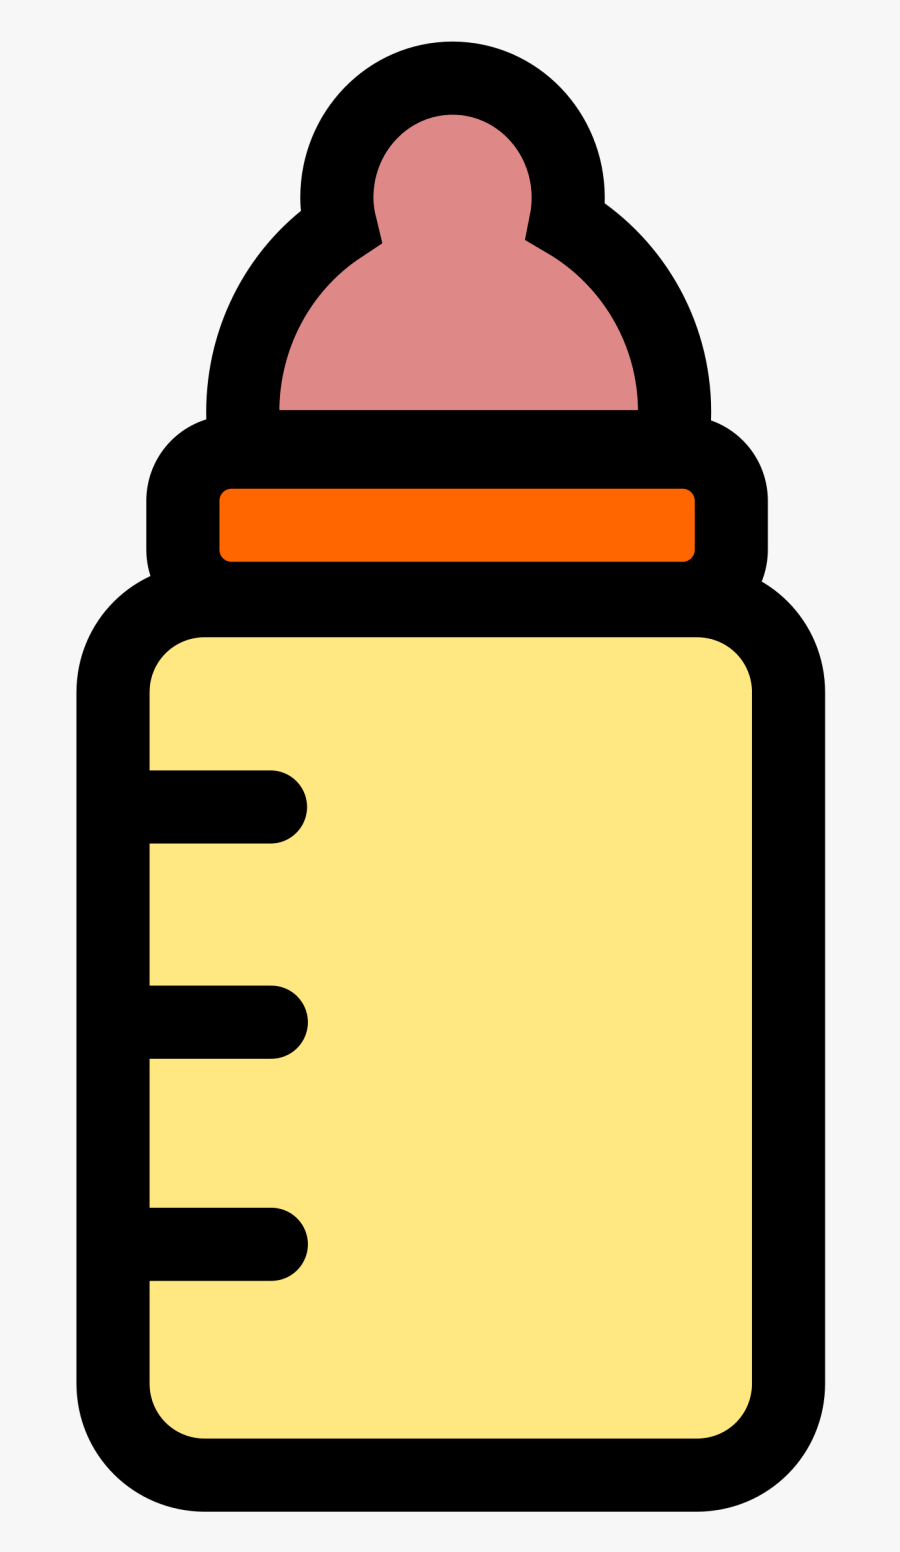 Free Pictures Download Clip - Baby Bottle Drawing Easy, Transparent Clipart